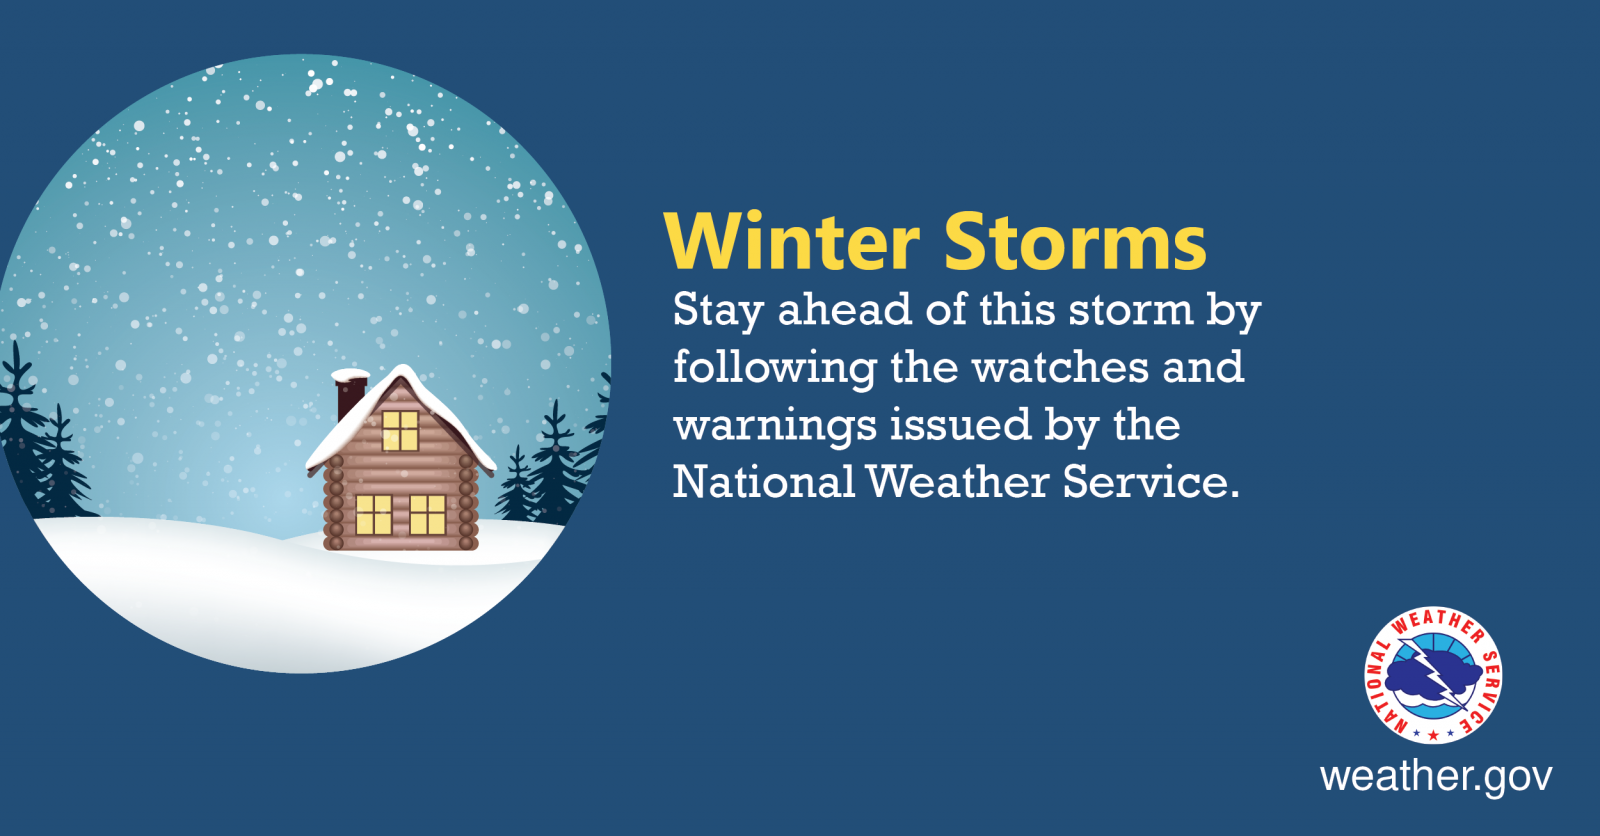 Winter Storms - Stay ahead of this storm by following the watches and warnings issued by the National Weather Service.